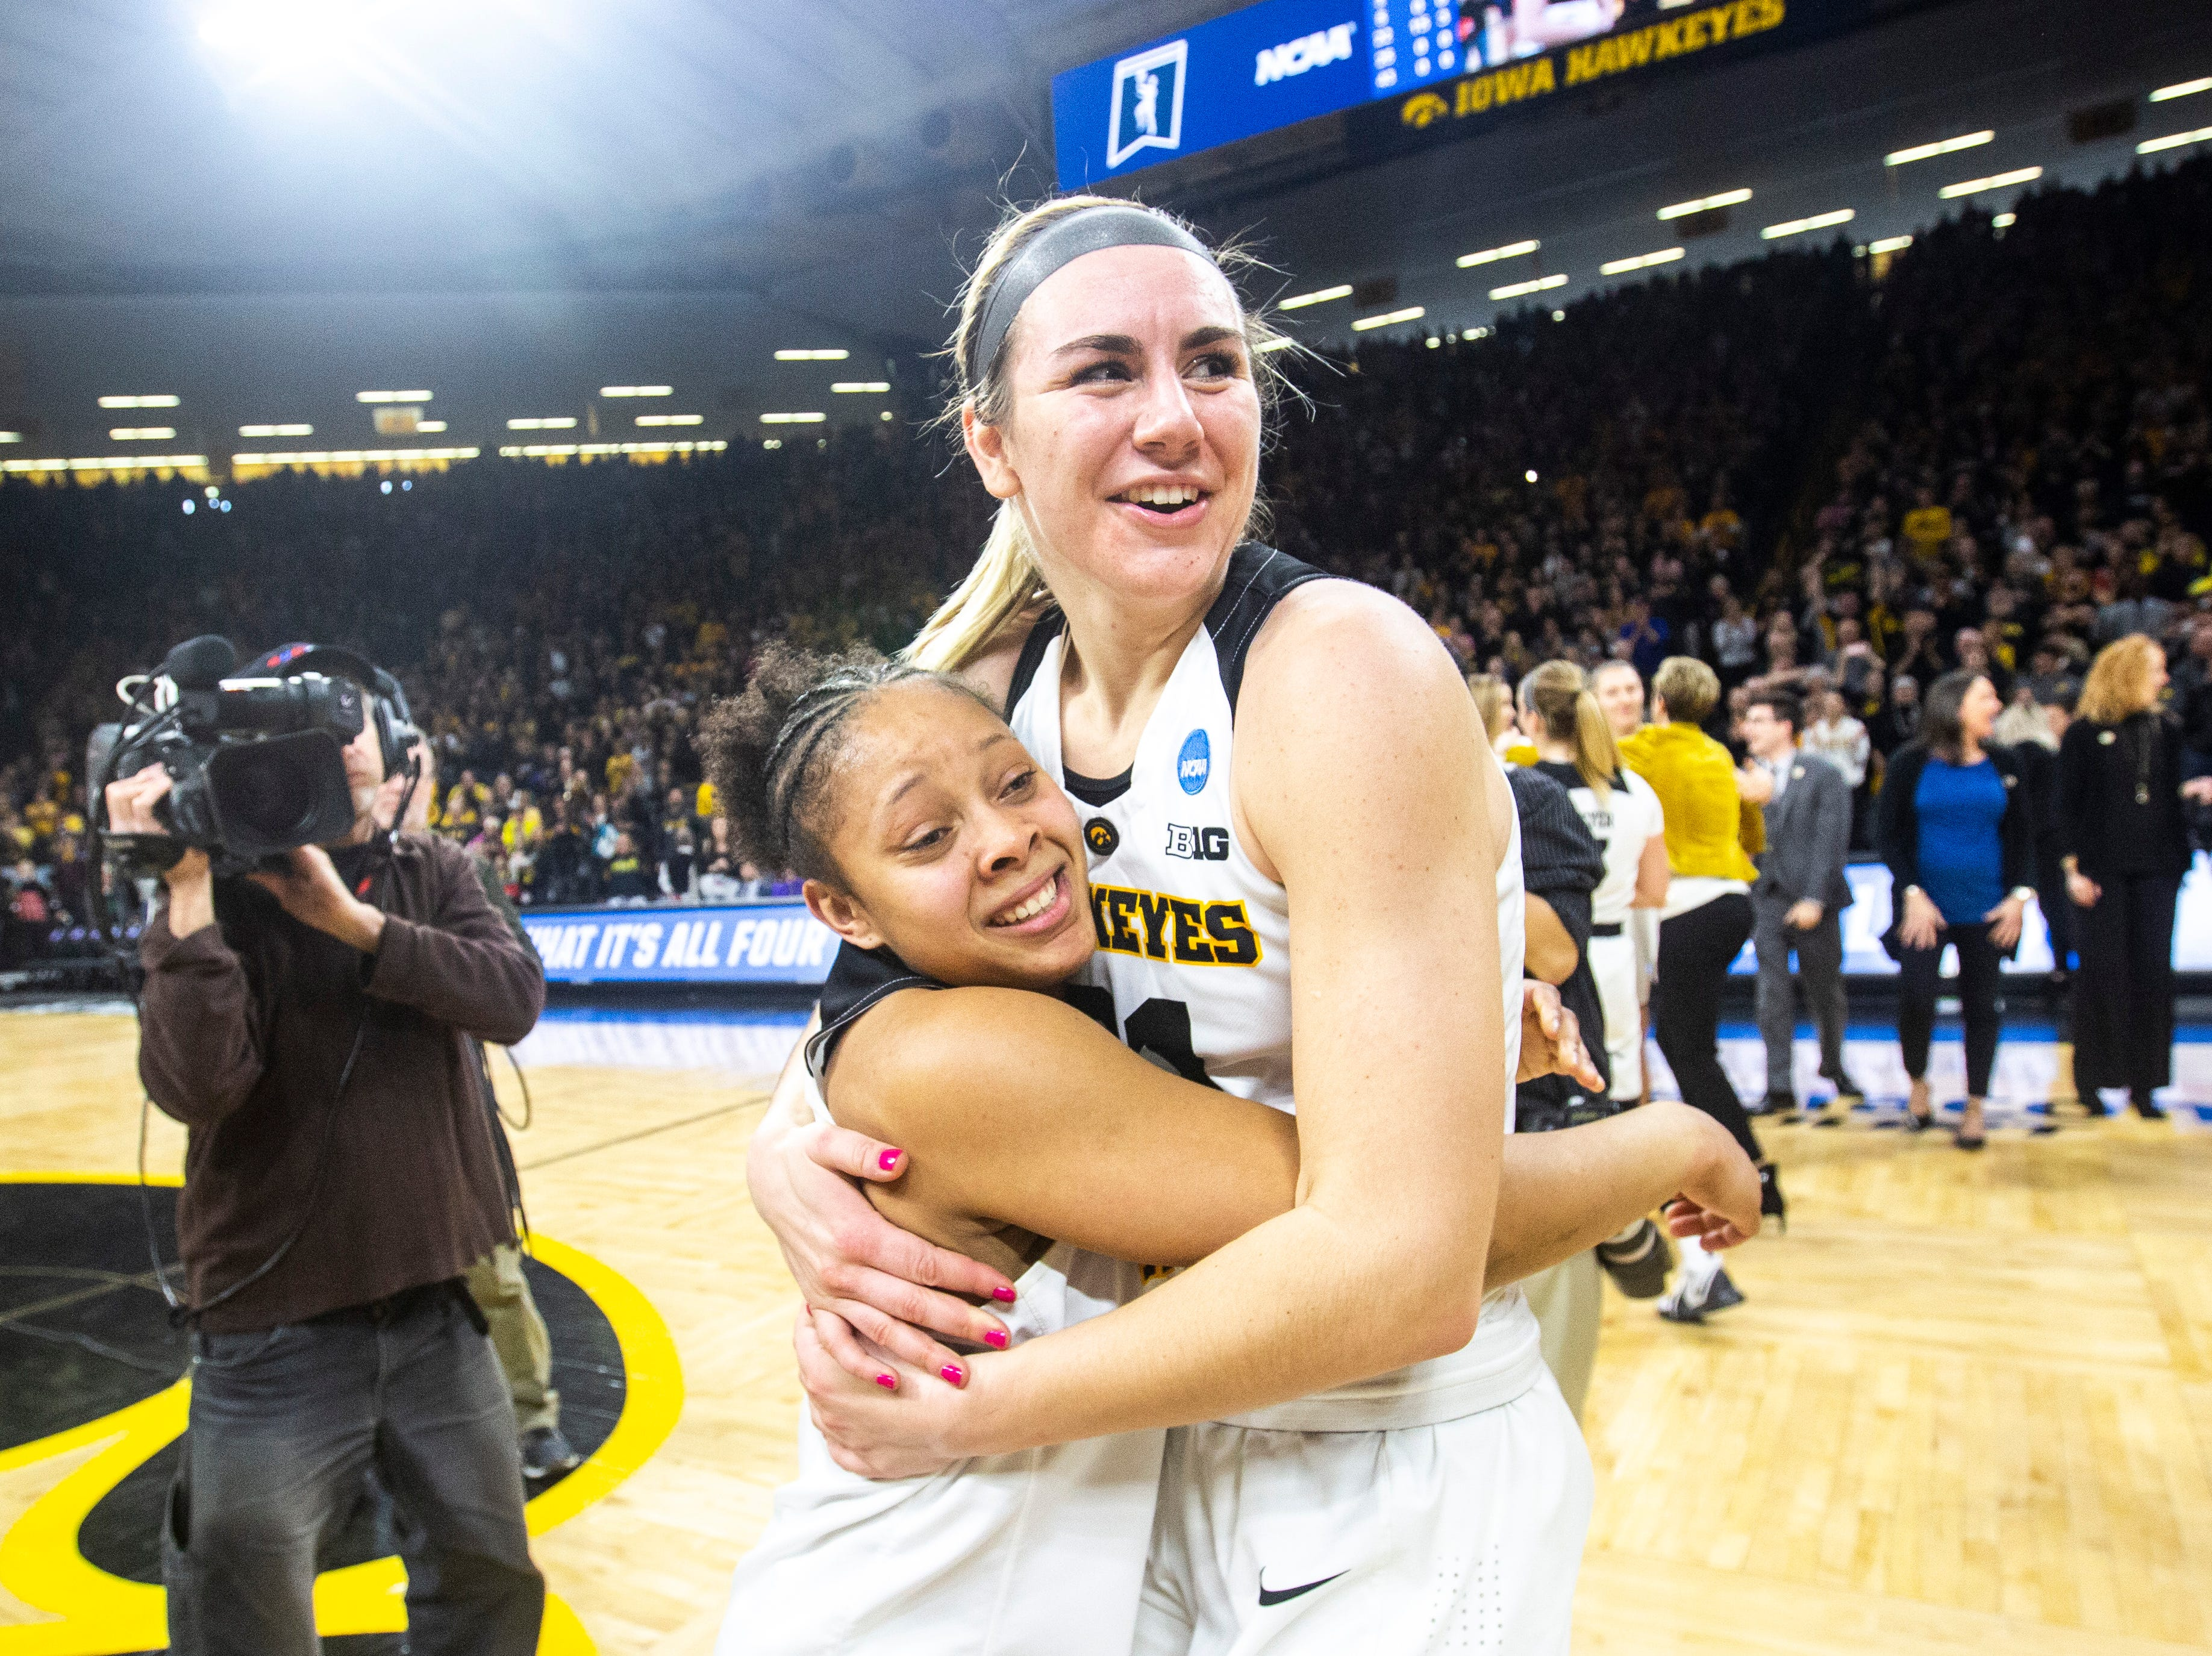 Iowa guard Tania Davis, left, embraces Iowa forward Hannah Stewart during a NCAA women's basketball tournament second-round game, Sunday, March 24, 2019, at Carver-Hawkeye Arena in Iowa City, Iowa.